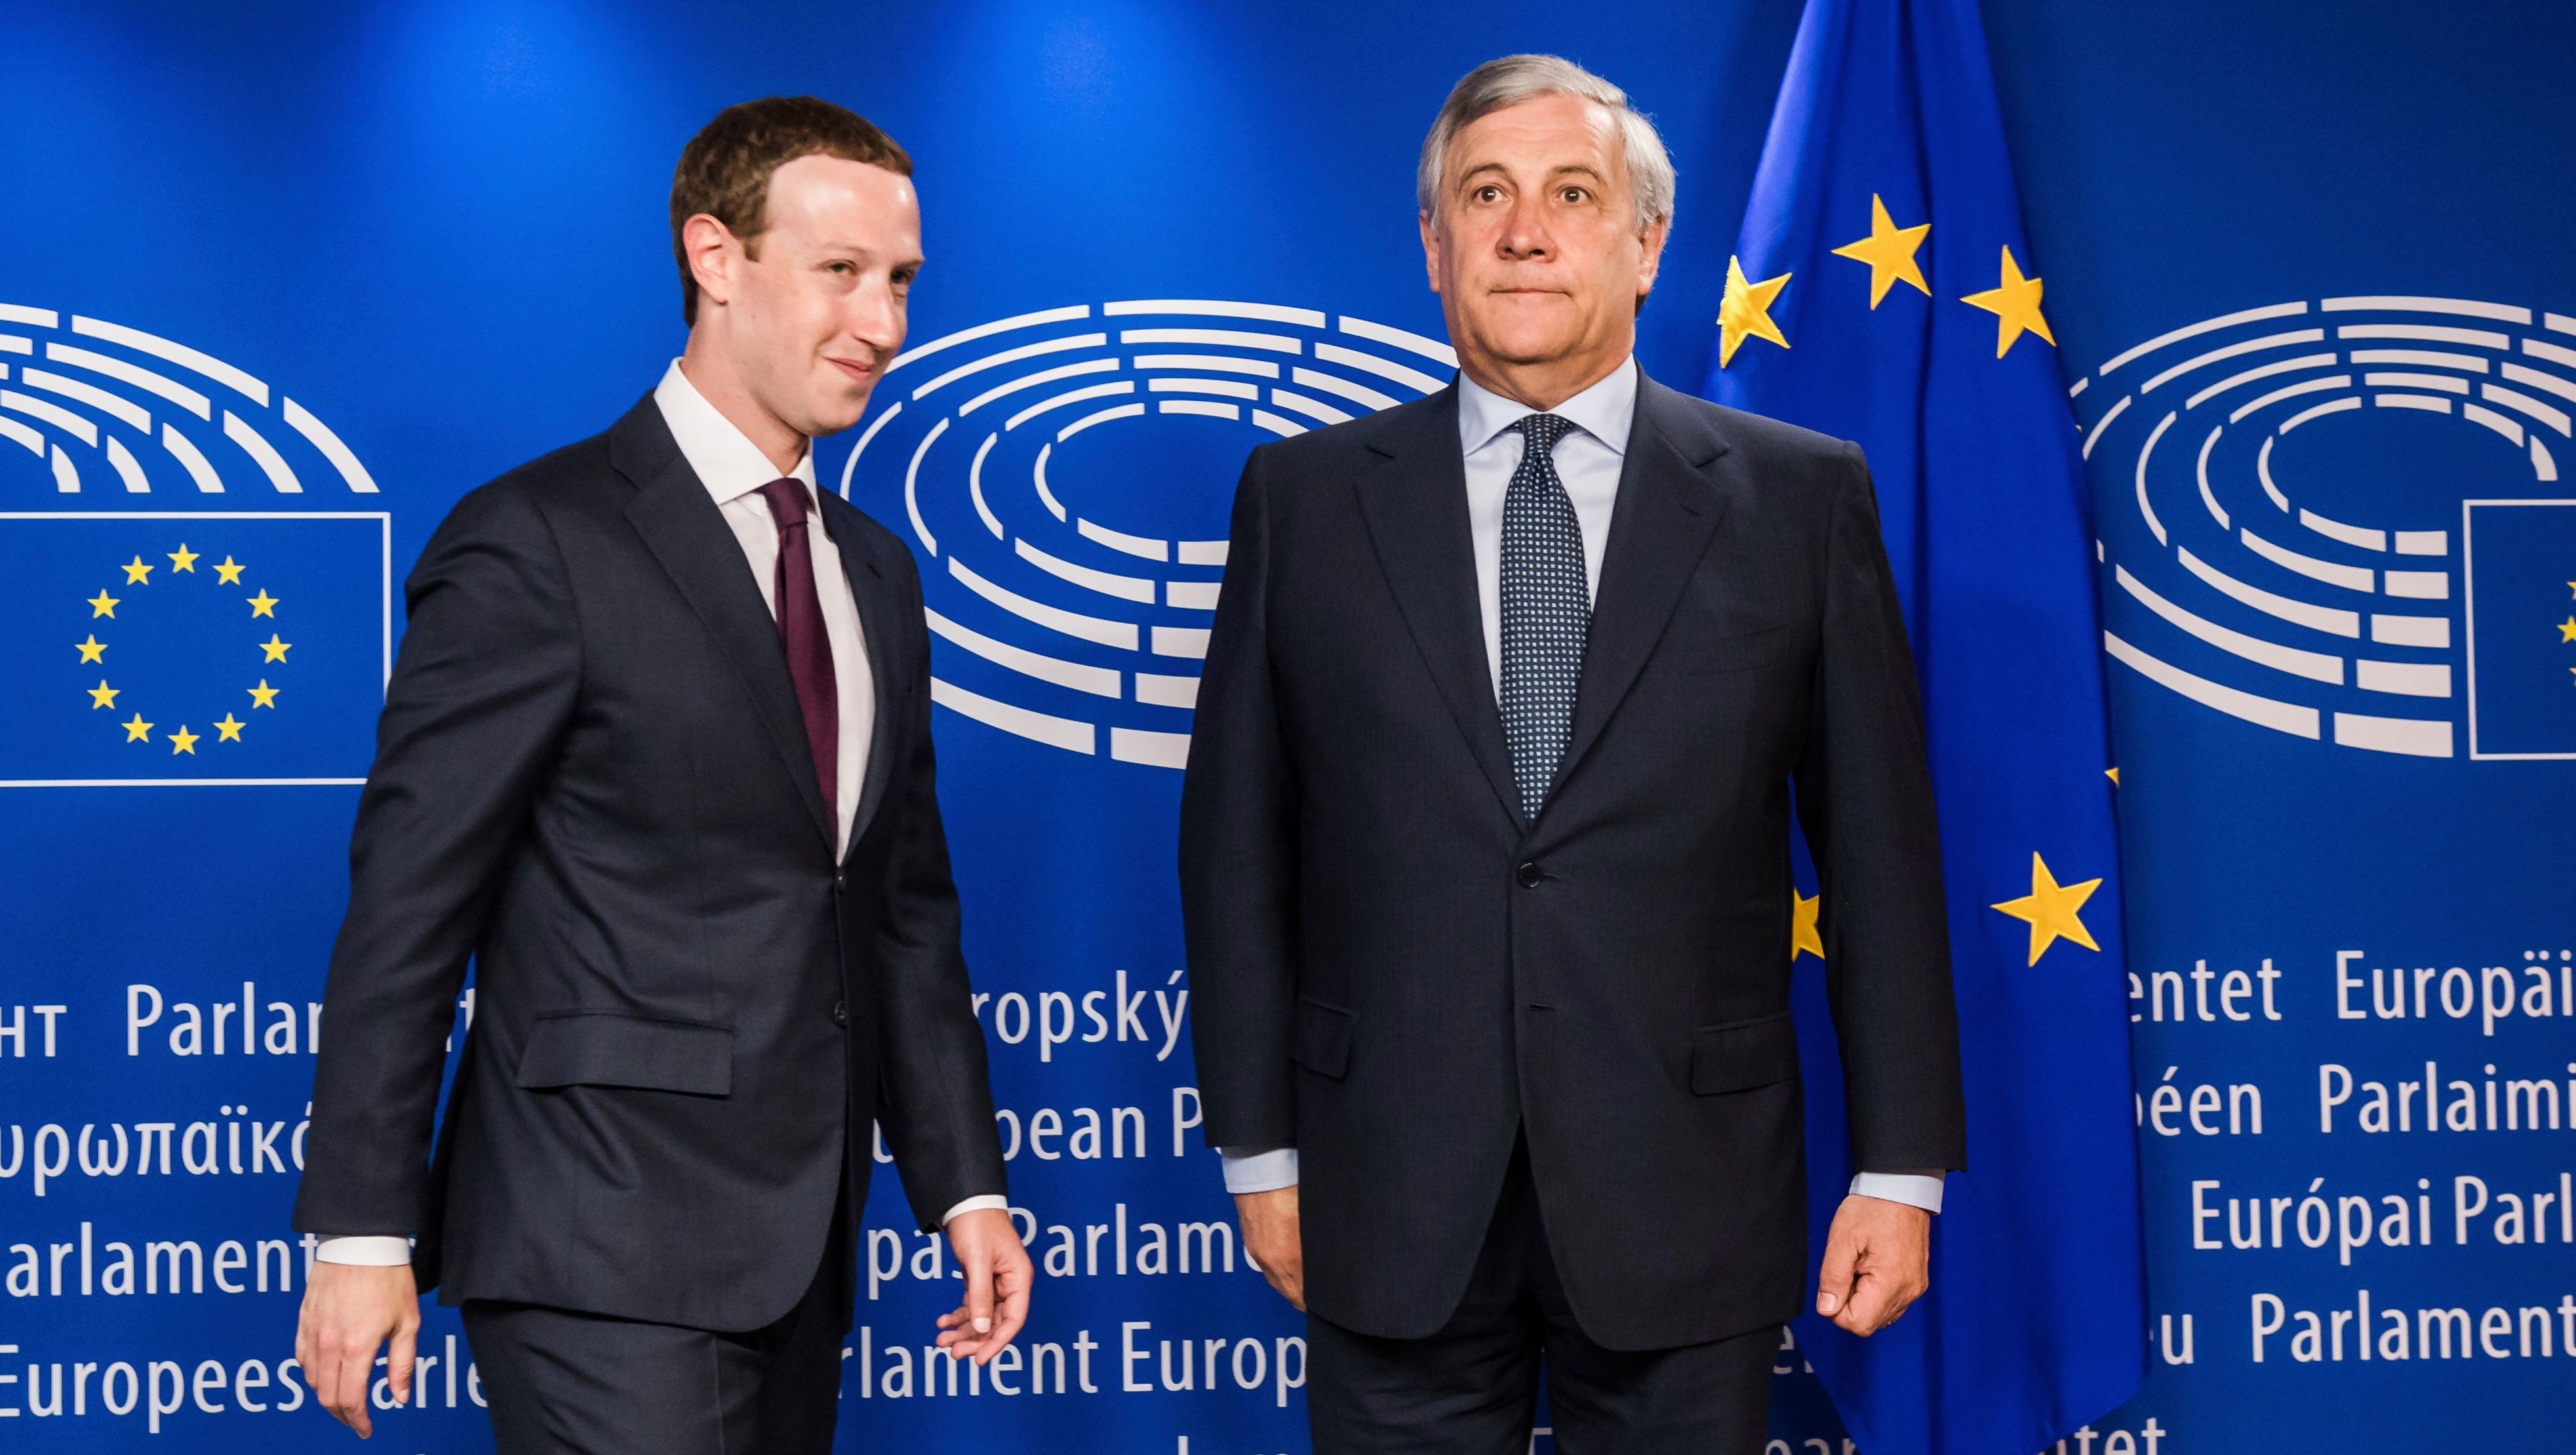 European Parliament President Antonio Tajani, right, welcomes Facebook CEO Mark Zuckerberg upon his arrival at the EU Parliament in Brussels on Tuesday, May 22, 2018. Facebook CEO Mark Zuckerberg faces senior European Union lawmakers today to answer questions about a scandal over the alleged misuse of the data of millions of Facebook users. (AP Photo/Geert Vanden Wijngaert)